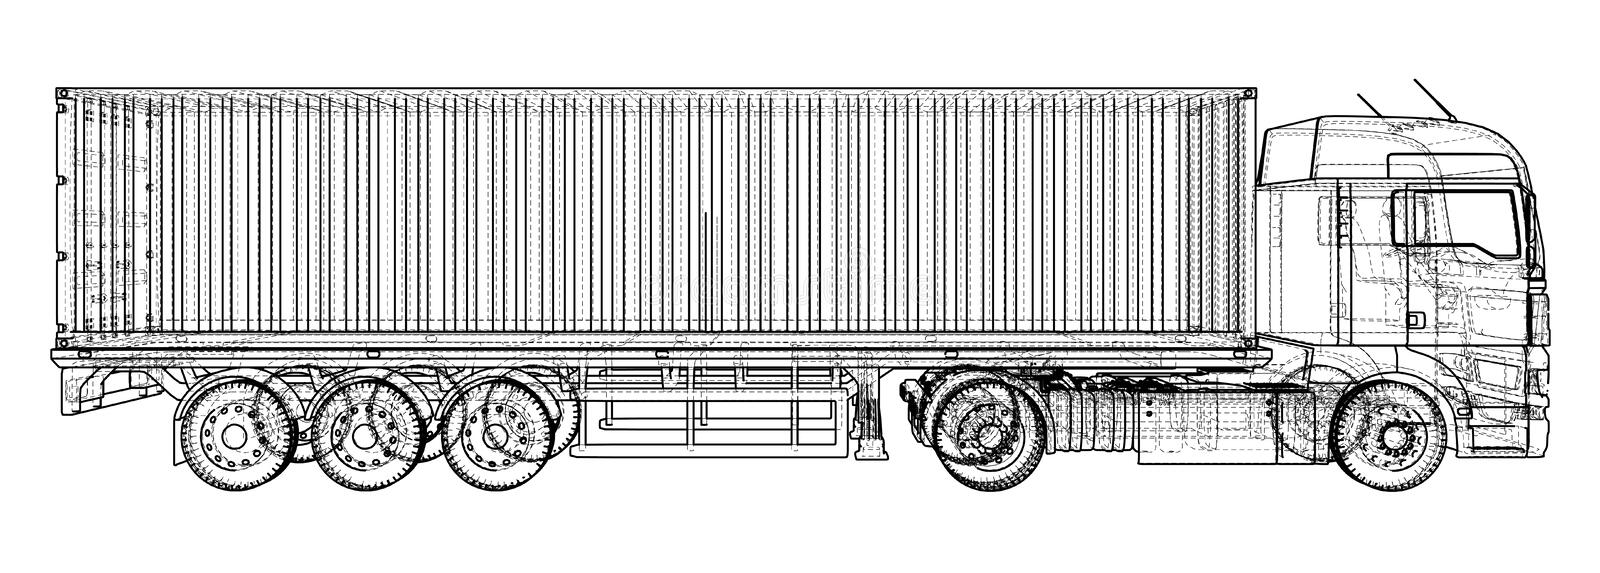 Car delivery semi truck trailer wire frame eps10 format vector download car delivery semi truck trailer wire frame eps10 format vector rendering malvernweather Image collections